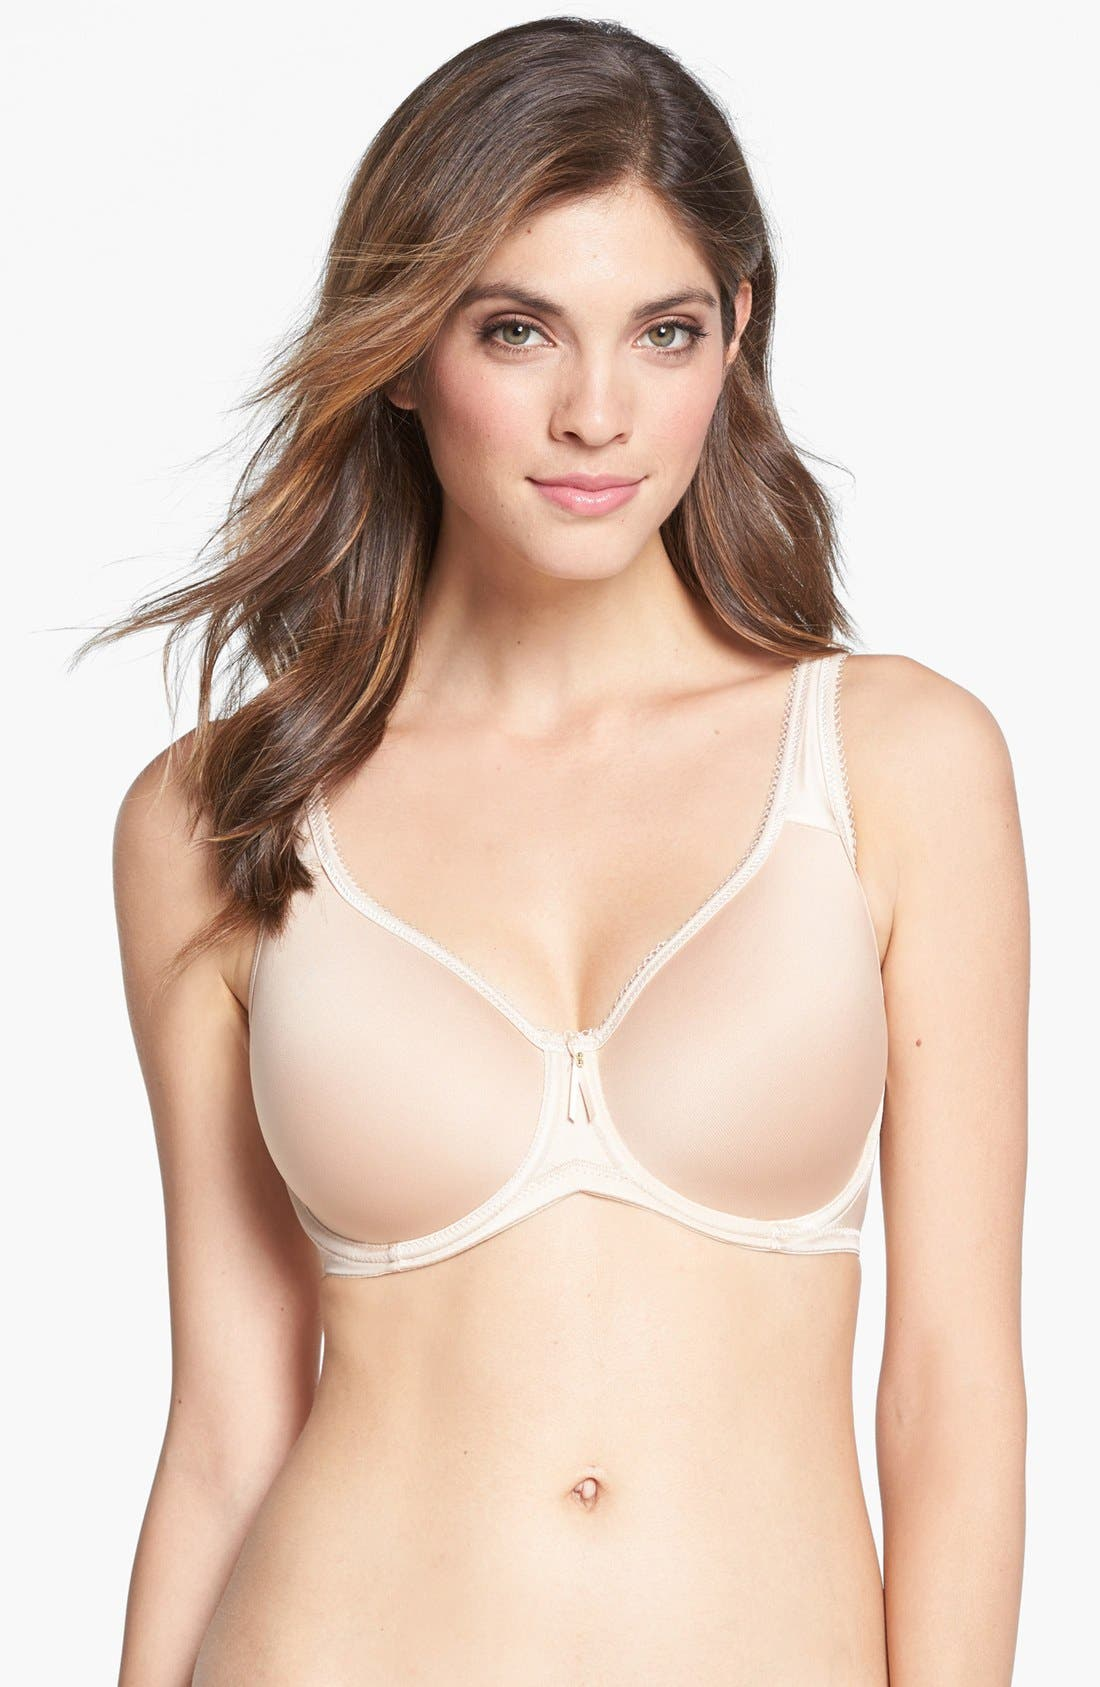 Alternate Image 1 Selected - Wacoal Basic Beauty Underwire Contour Bra